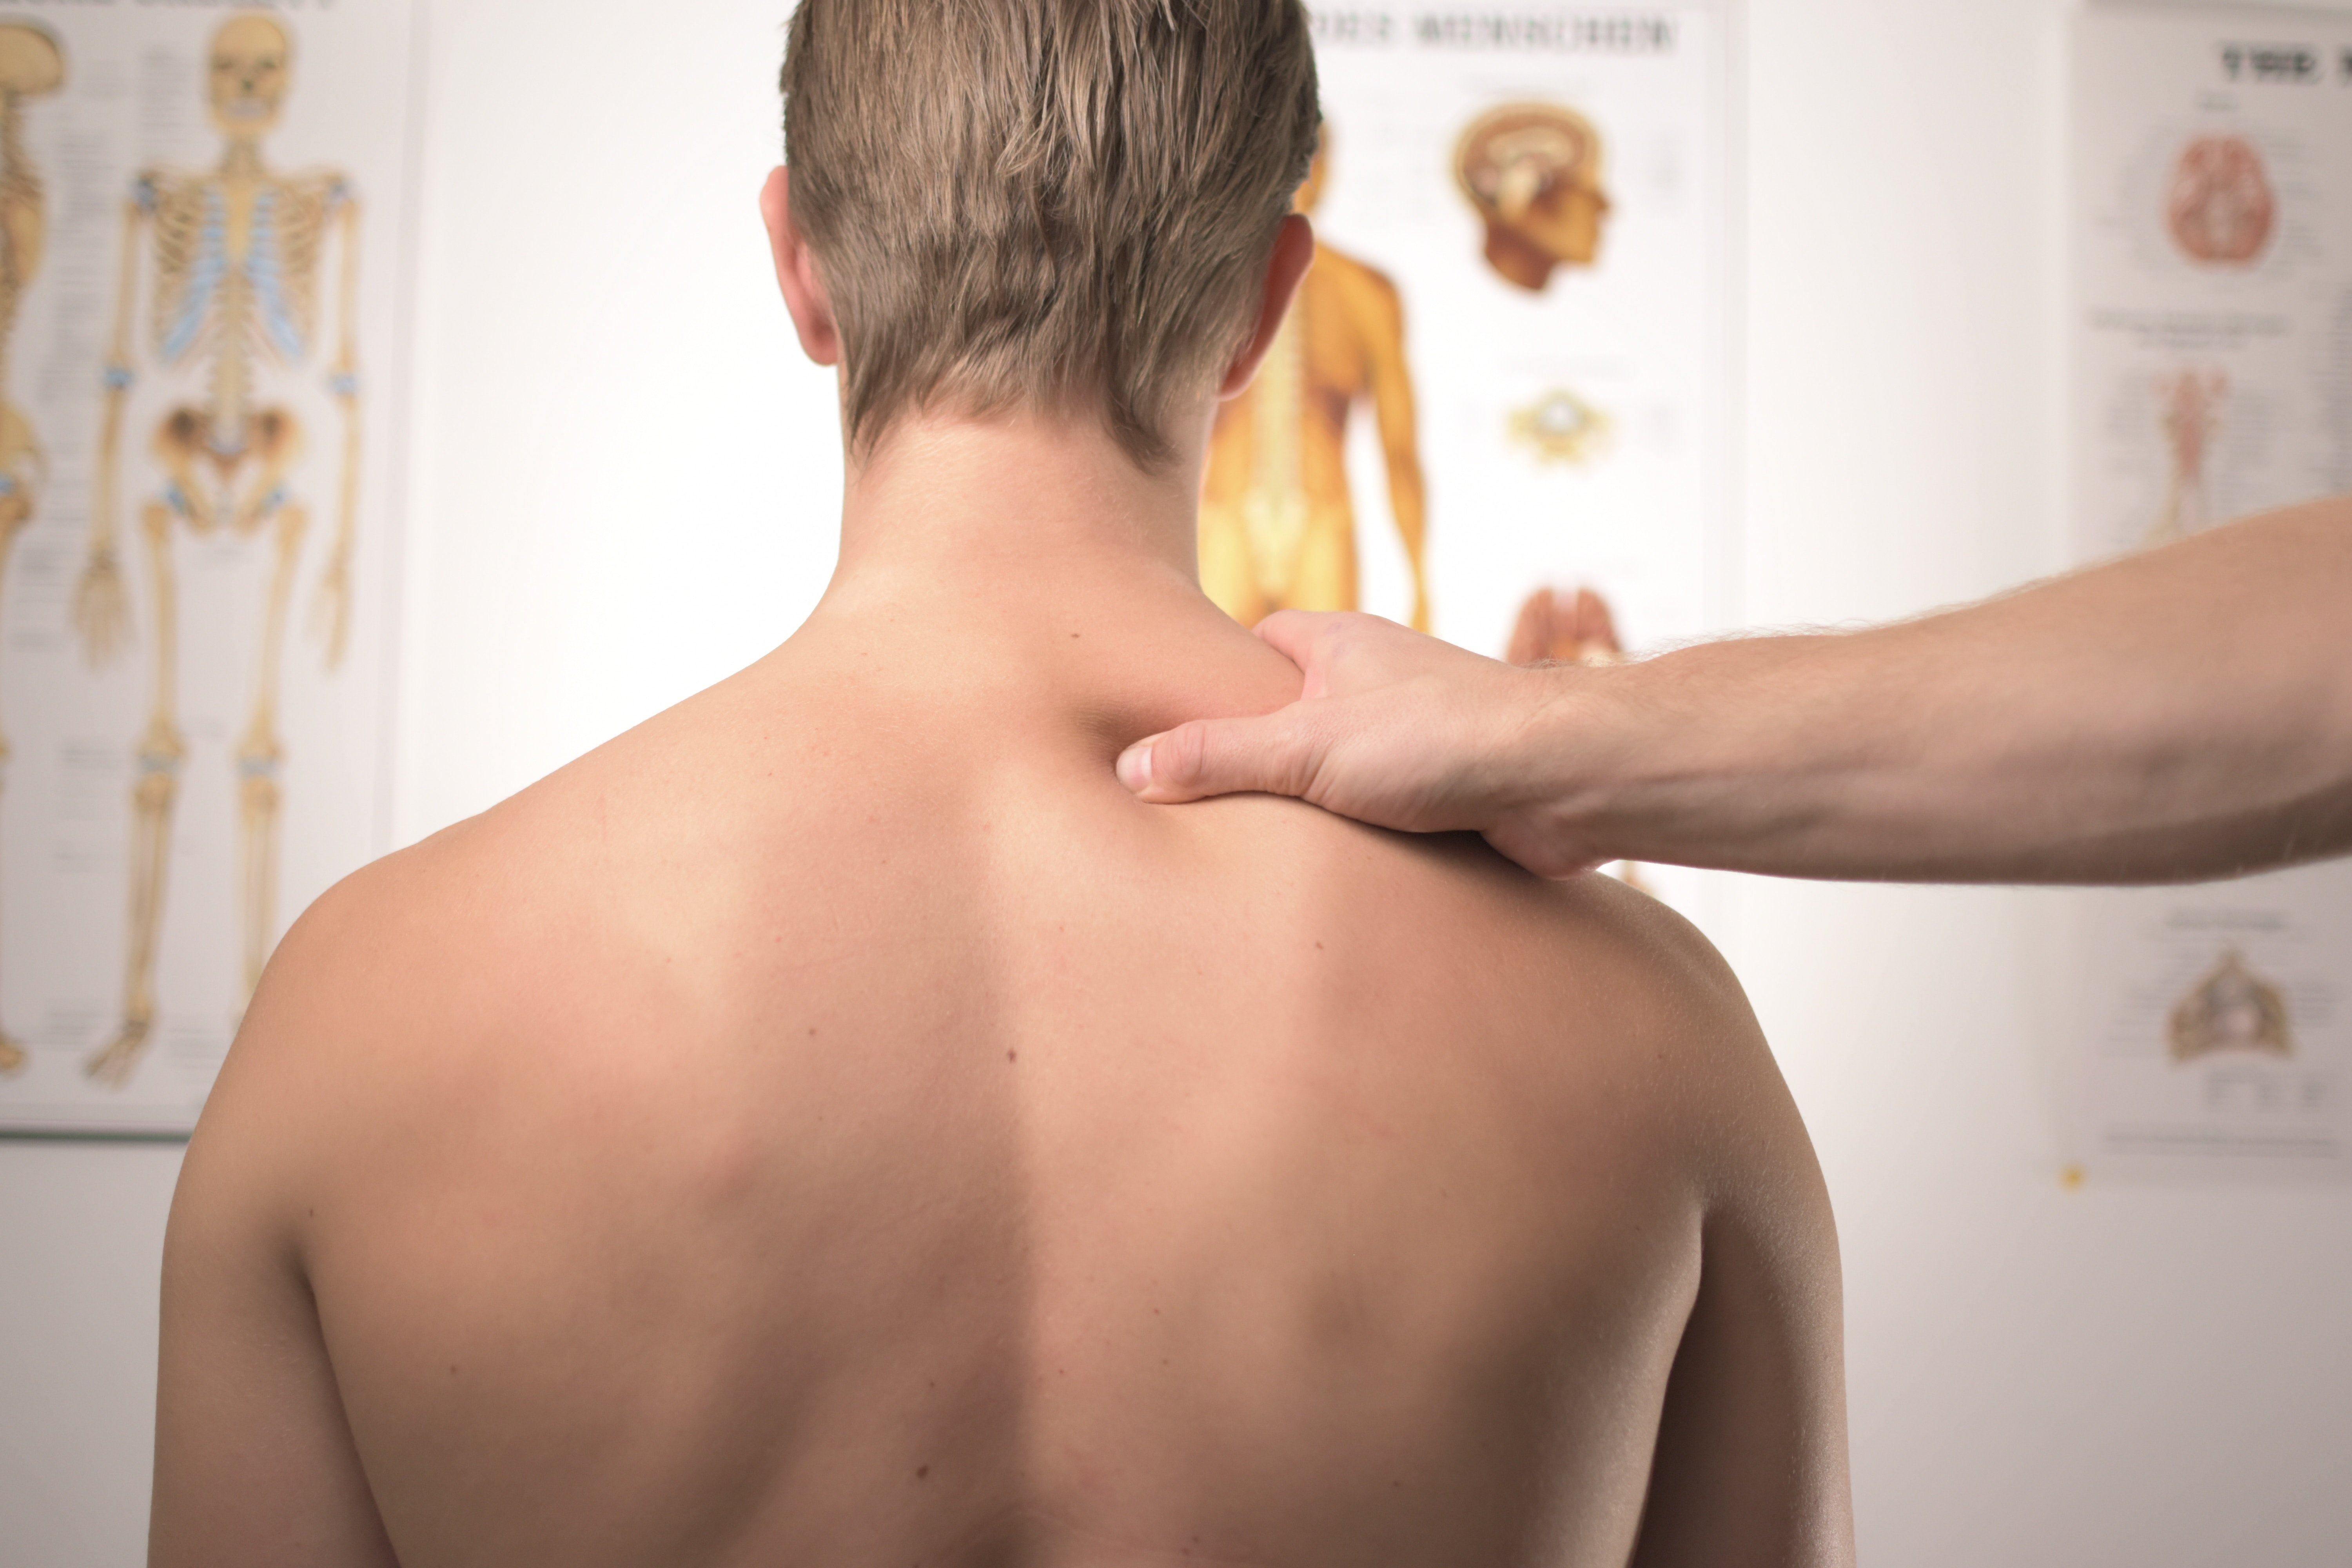 Back - Chiropractor Adjustment - Treatment